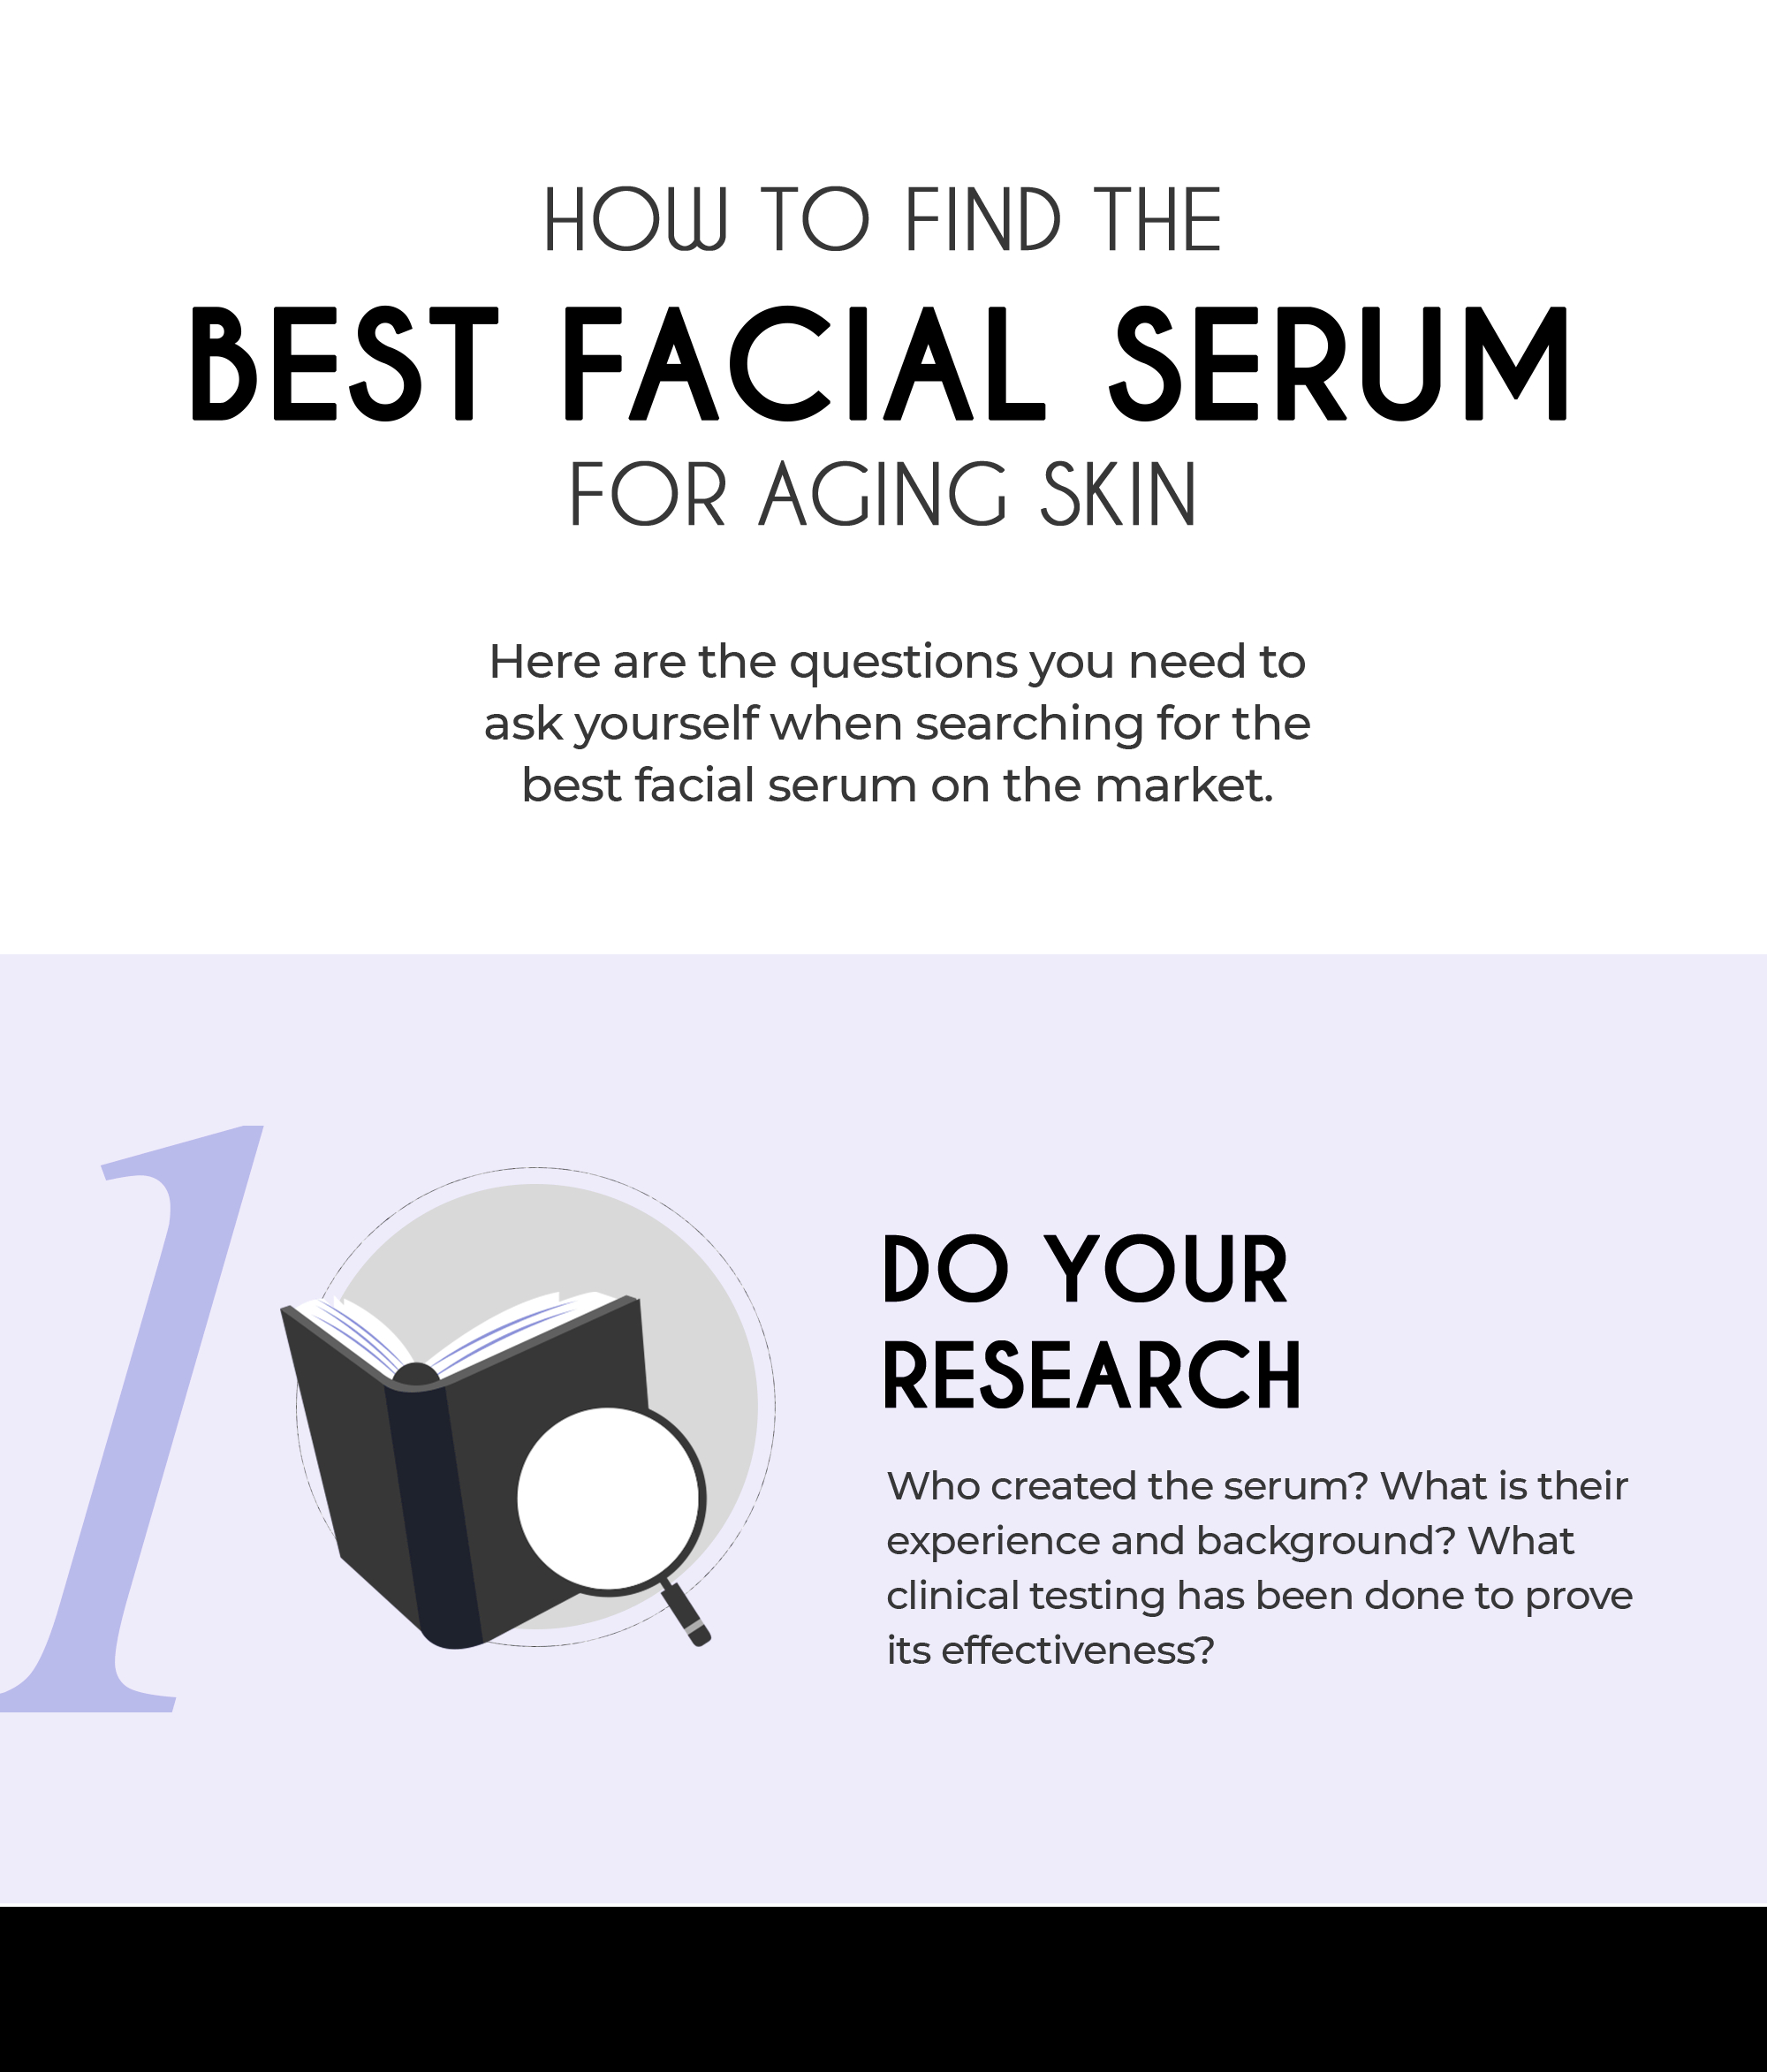 How to find the best facial serum for aging skin